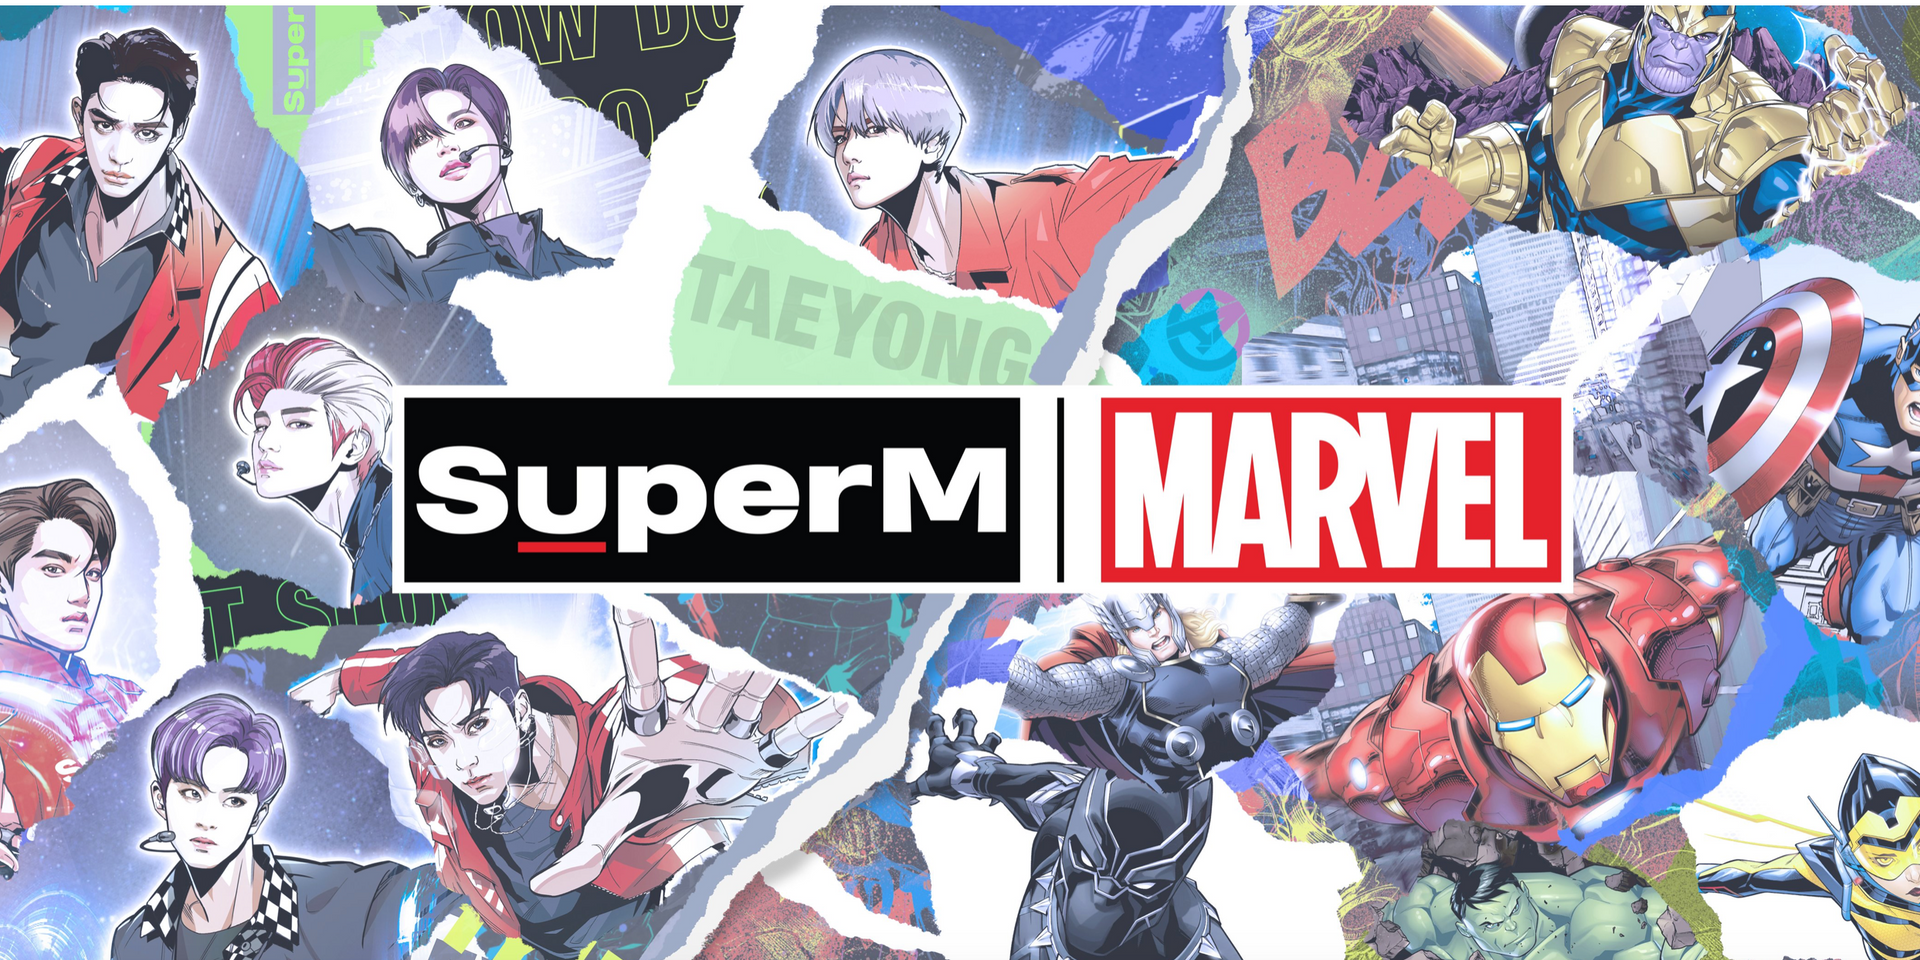 SuperM reveals Marvel collaboration, check out the limited edition merch drop